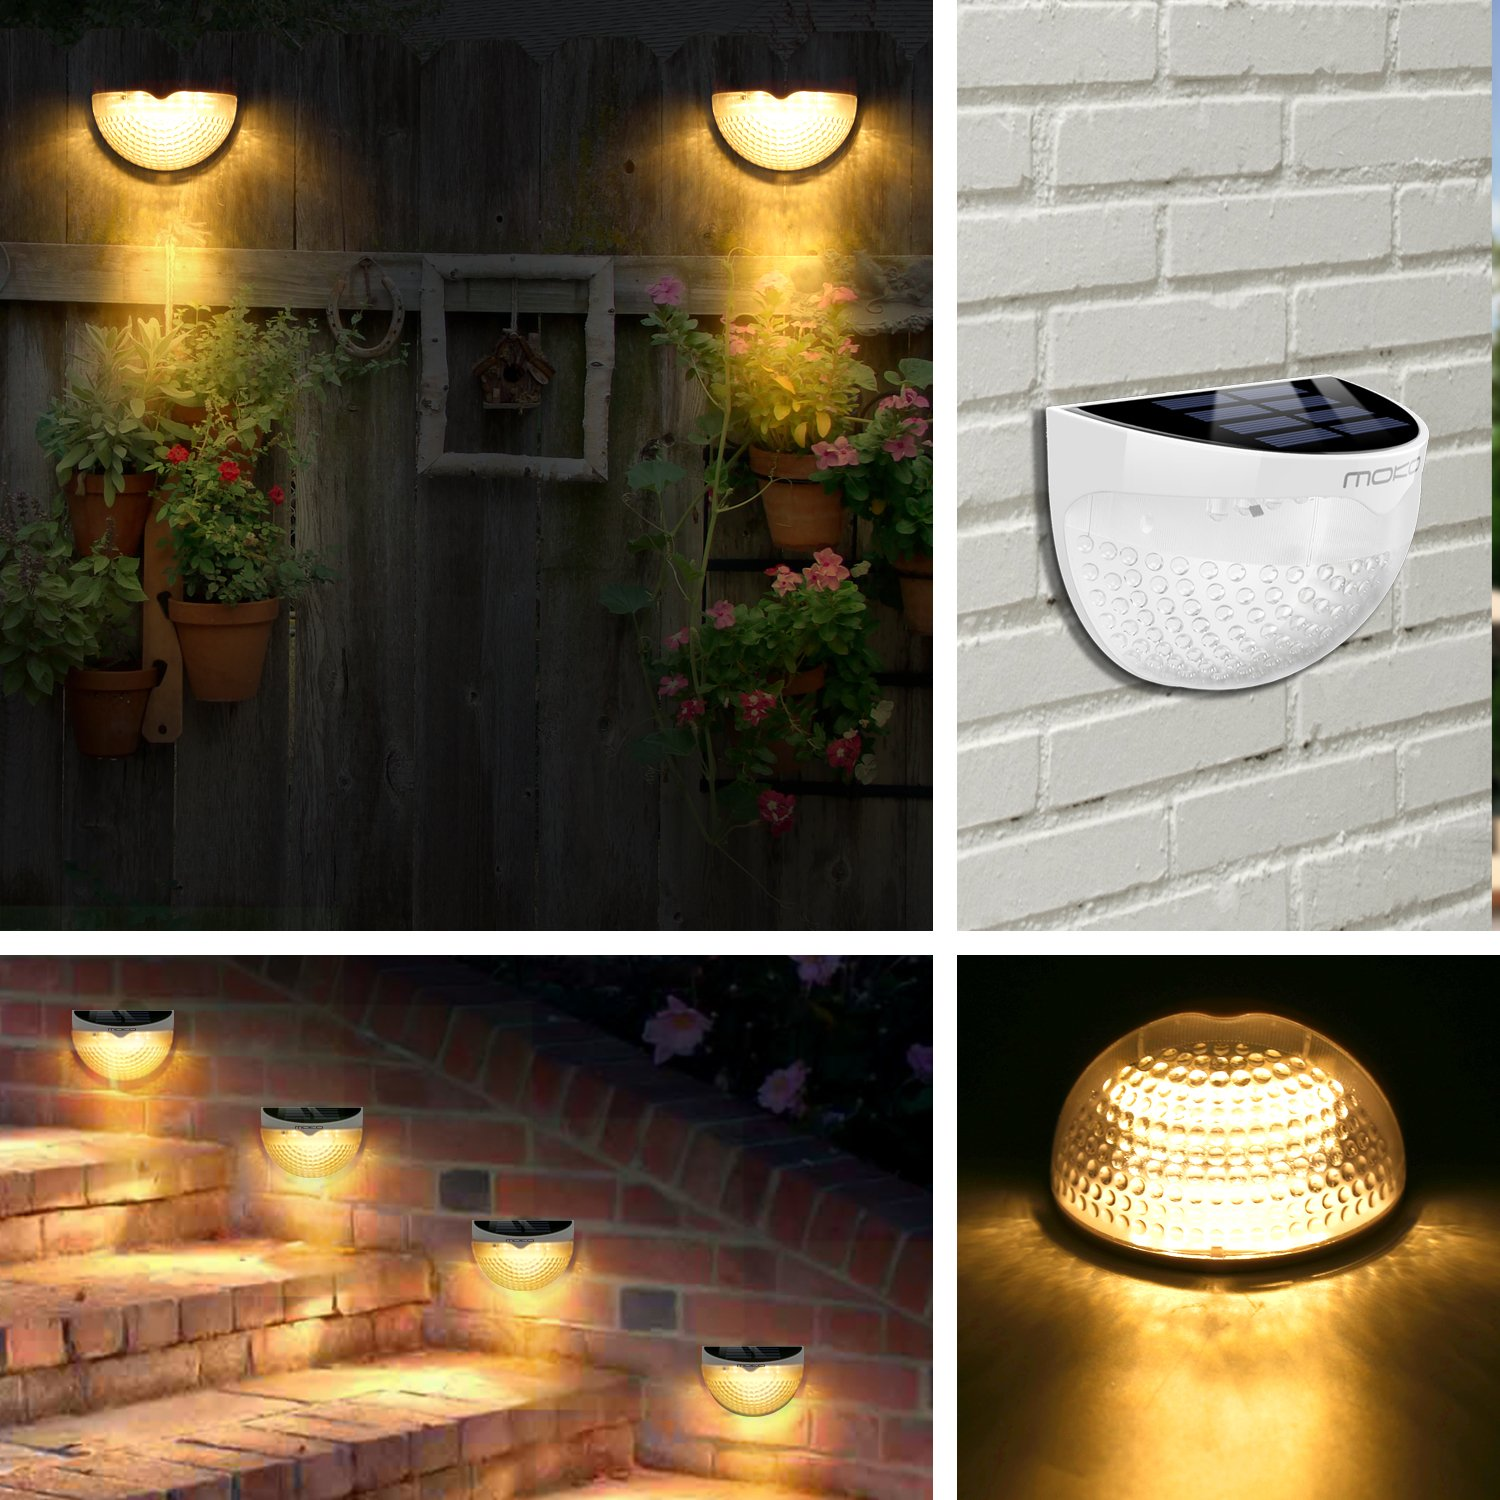 Yard Patio White Deck MoKo Outdoor Waterproof Solar Powered Security Lamp Solar Lights Driveway Garden Wall-Mounted 6 LED Decorative Step Lights with Auto Sensor for Pathway 4PCS